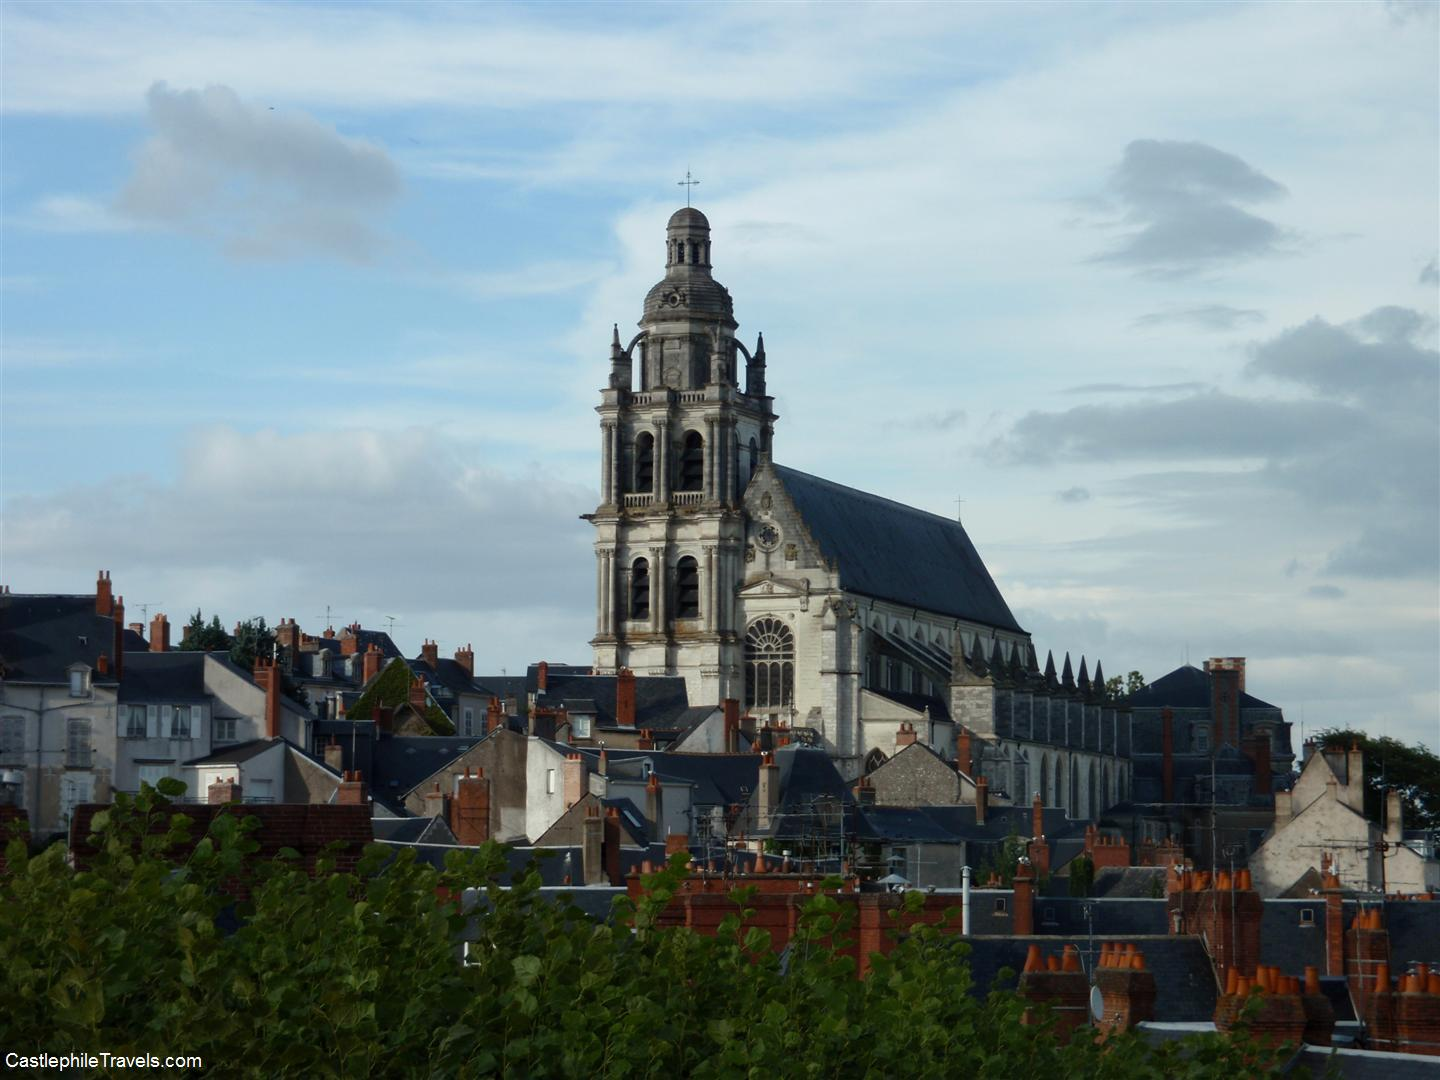 The Cathedral of Saint Louis, towering over the rooftops of Blois